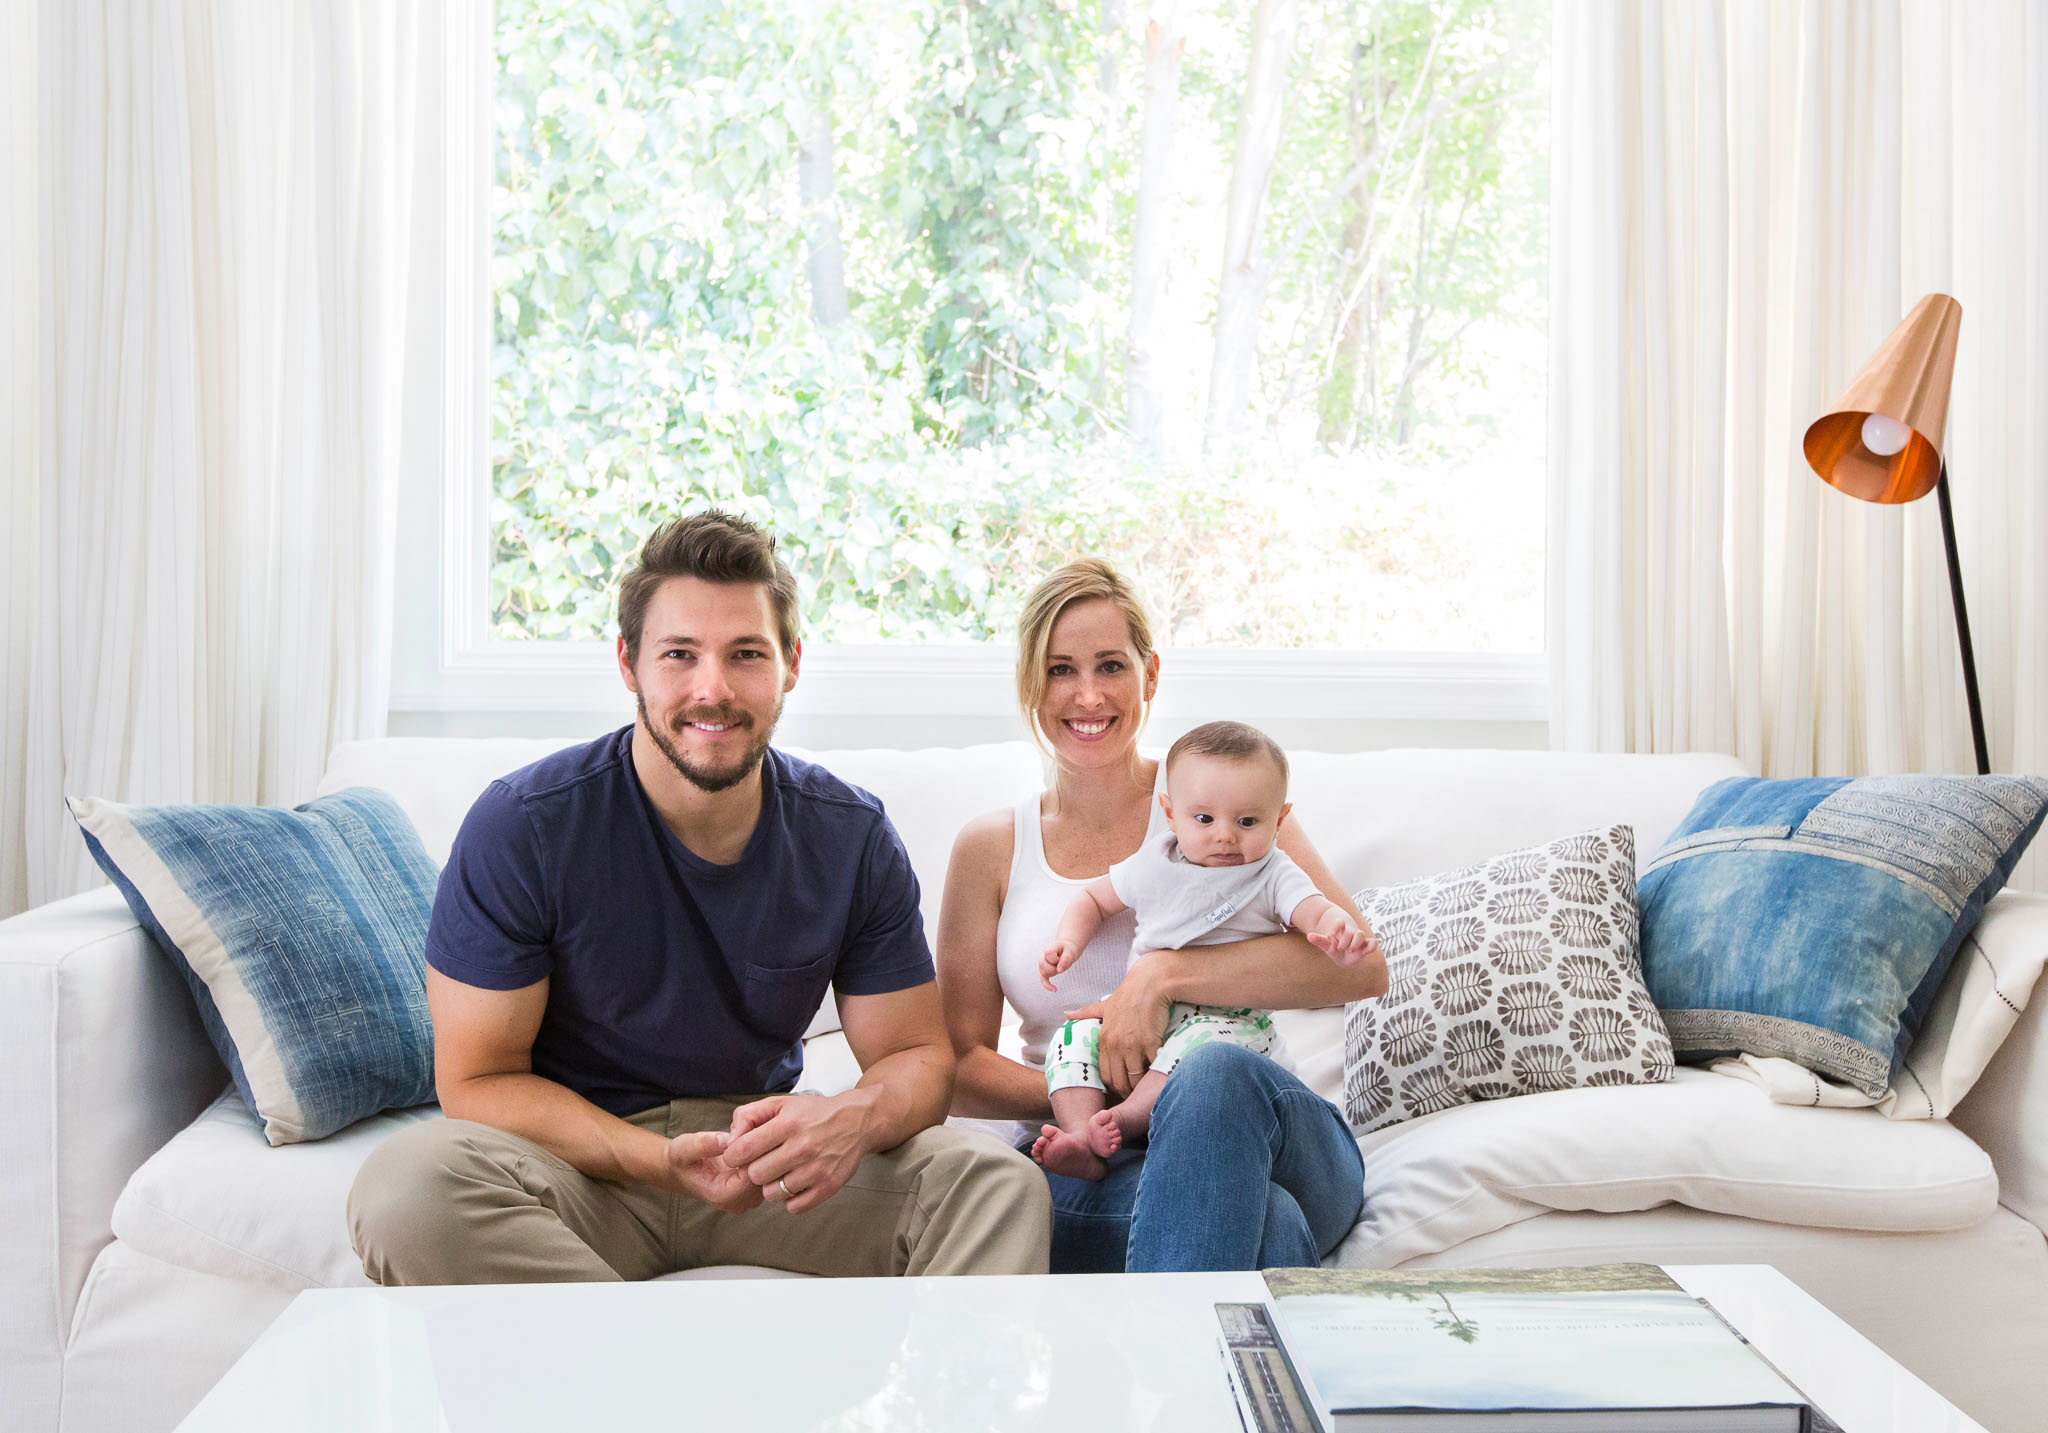 STUDIO CITY - a new family home for a young couple | as featured on People Home